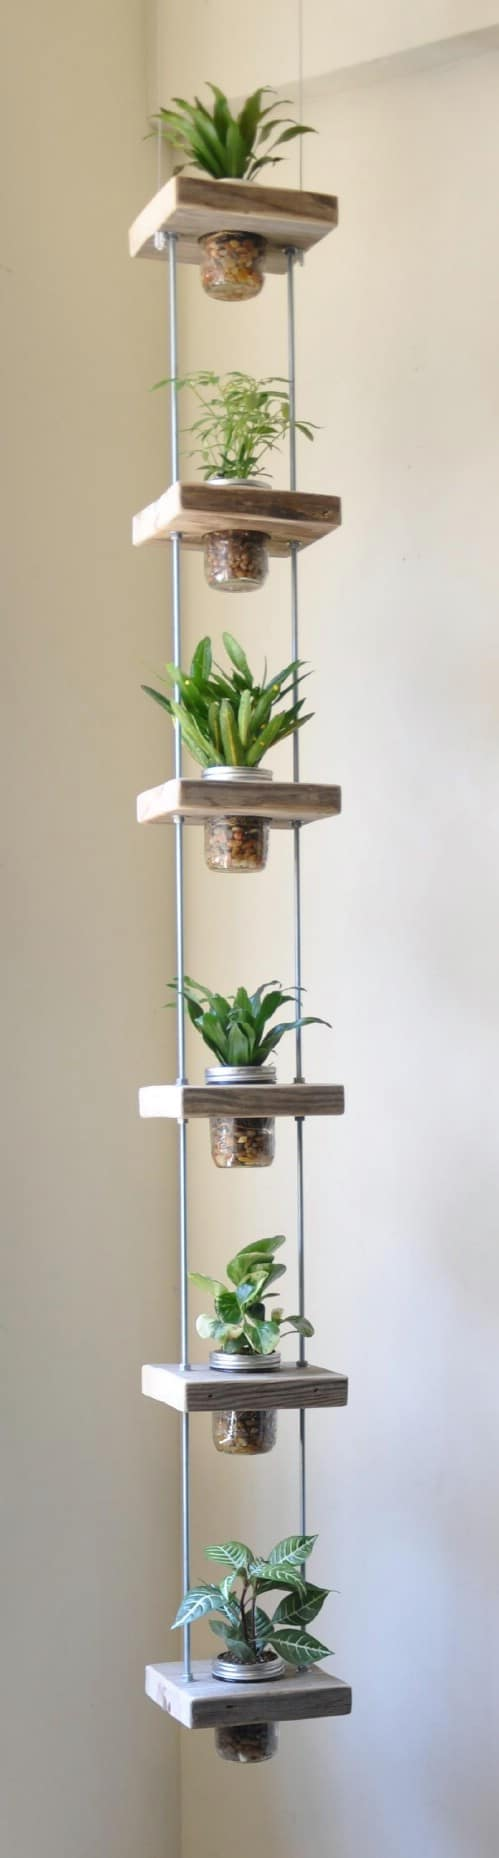 Nice Creative Indoor Herb Garden Ideas Part - 10: Simple Hanging Garden